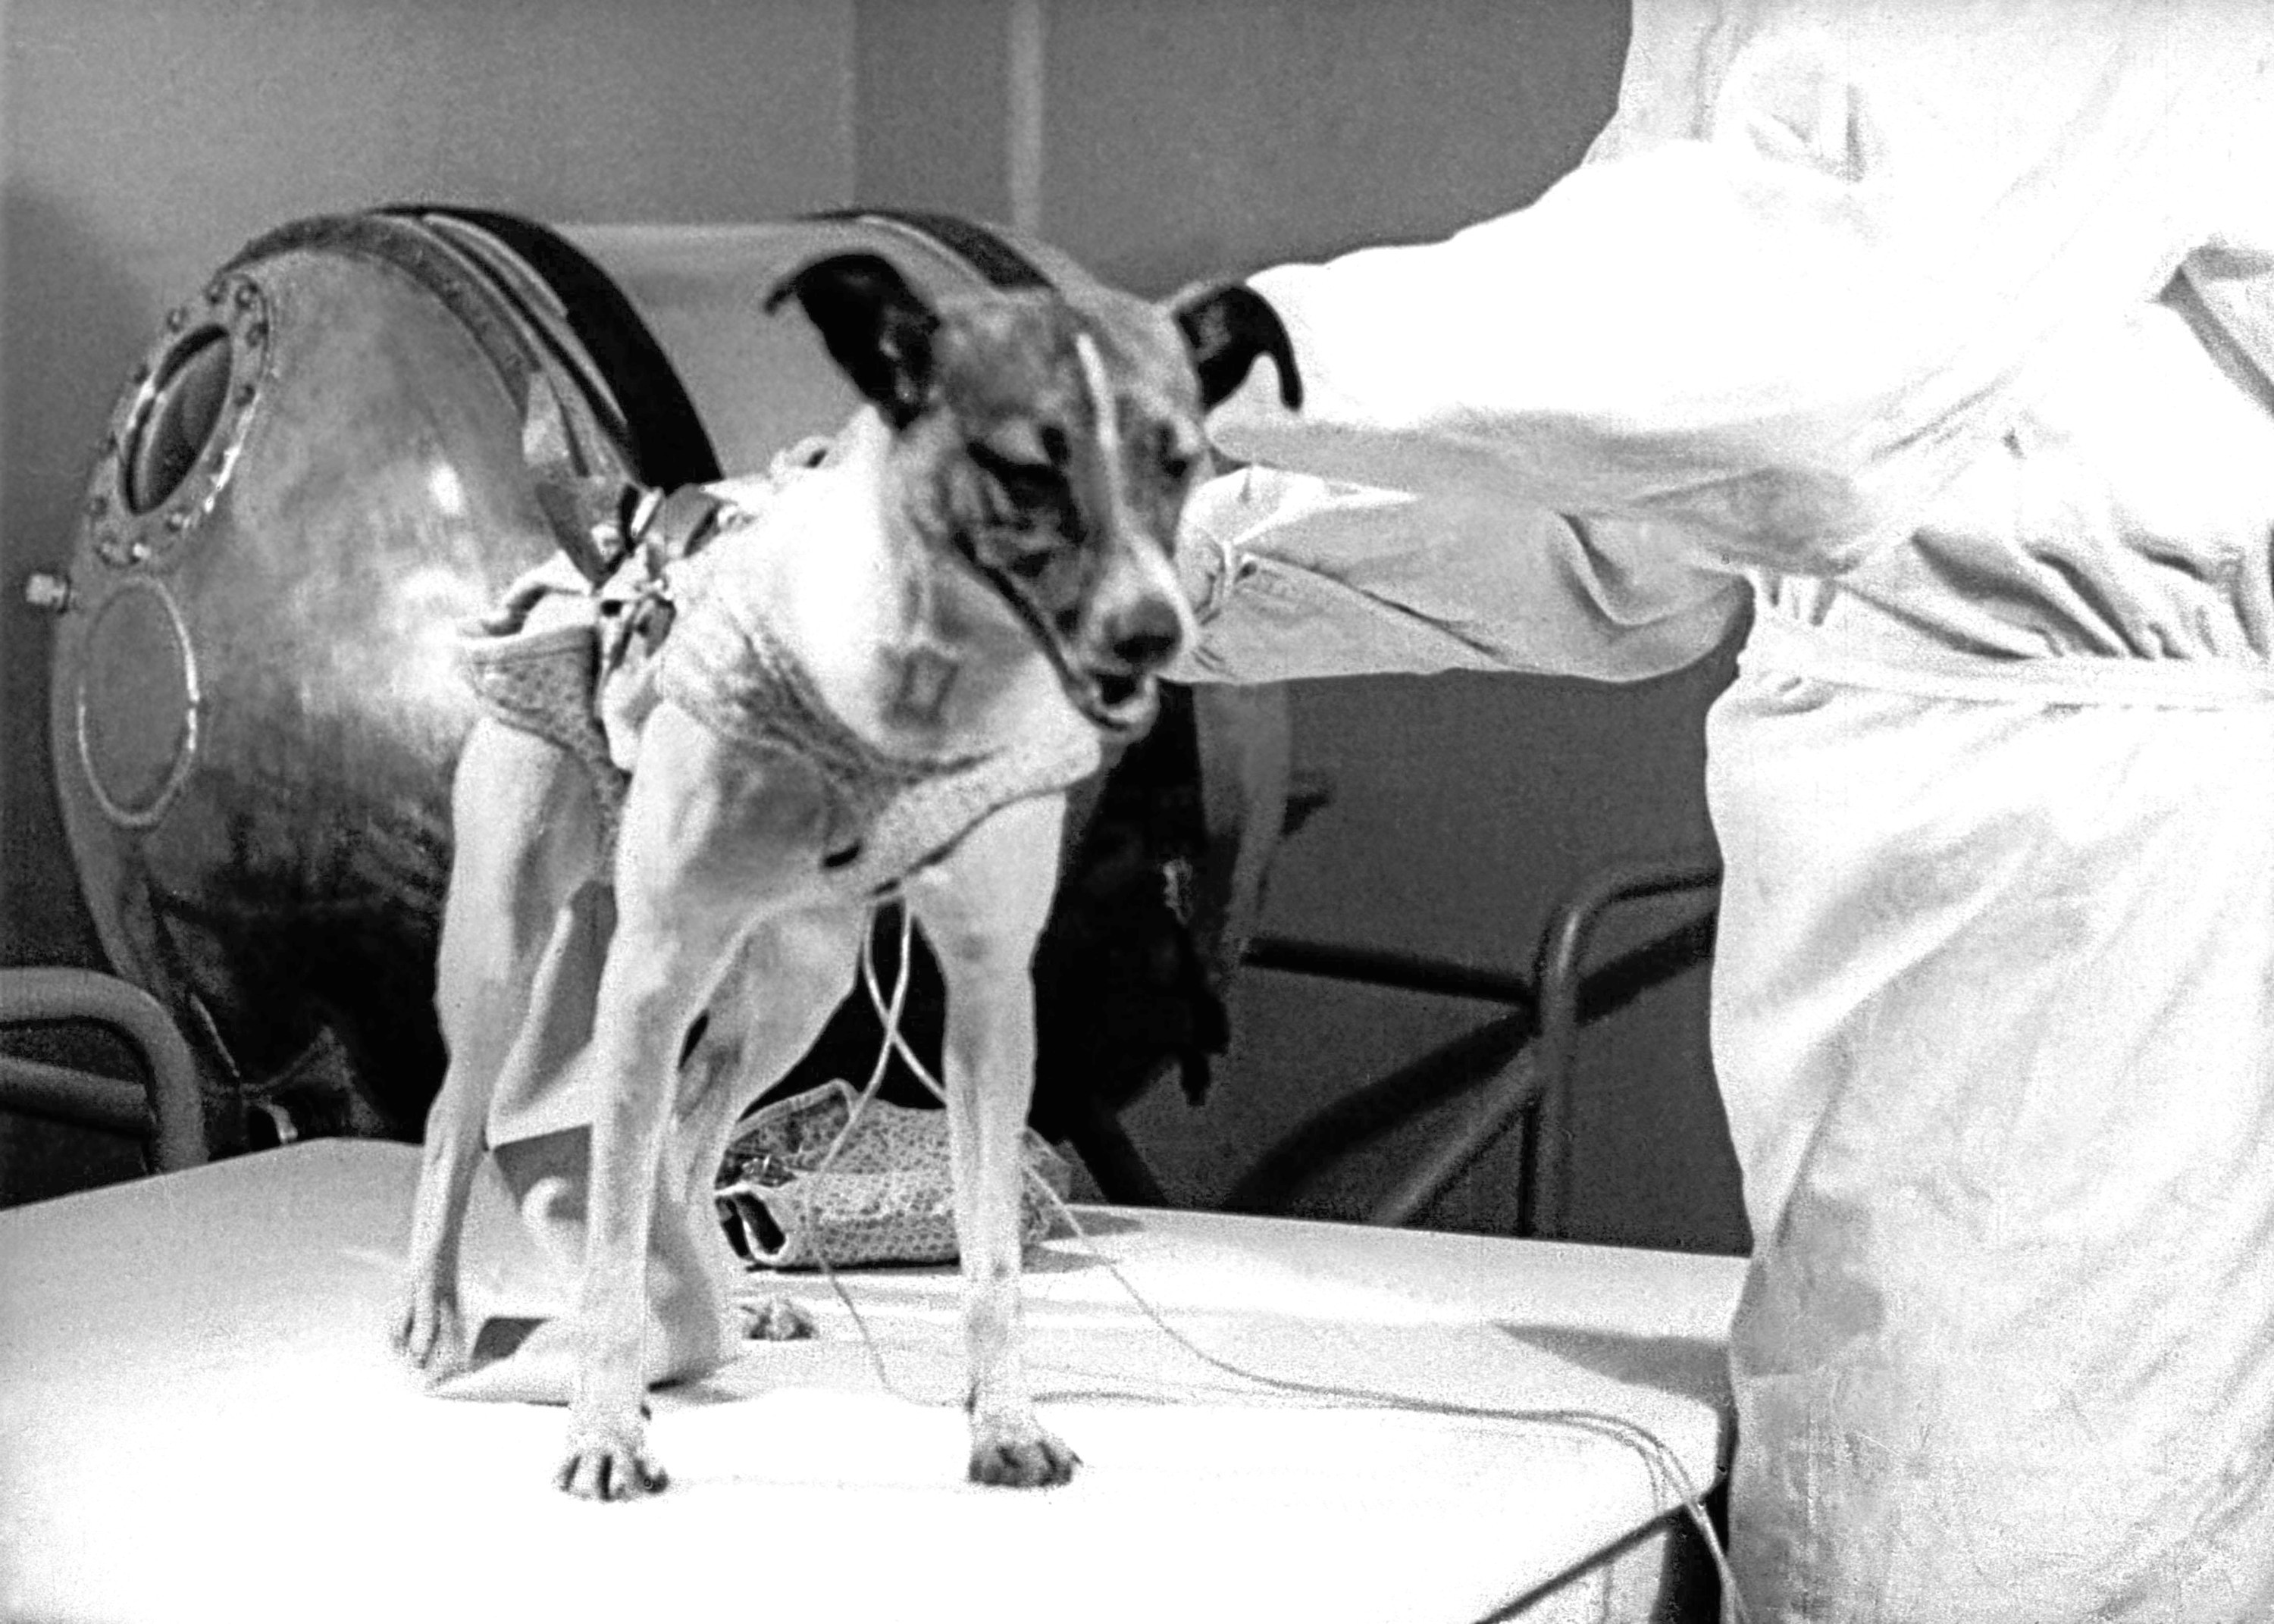 The dog Laika the first living thing to fly a spacecraft before embarking on the Sputnik 2 artificial Earth satellite 1957